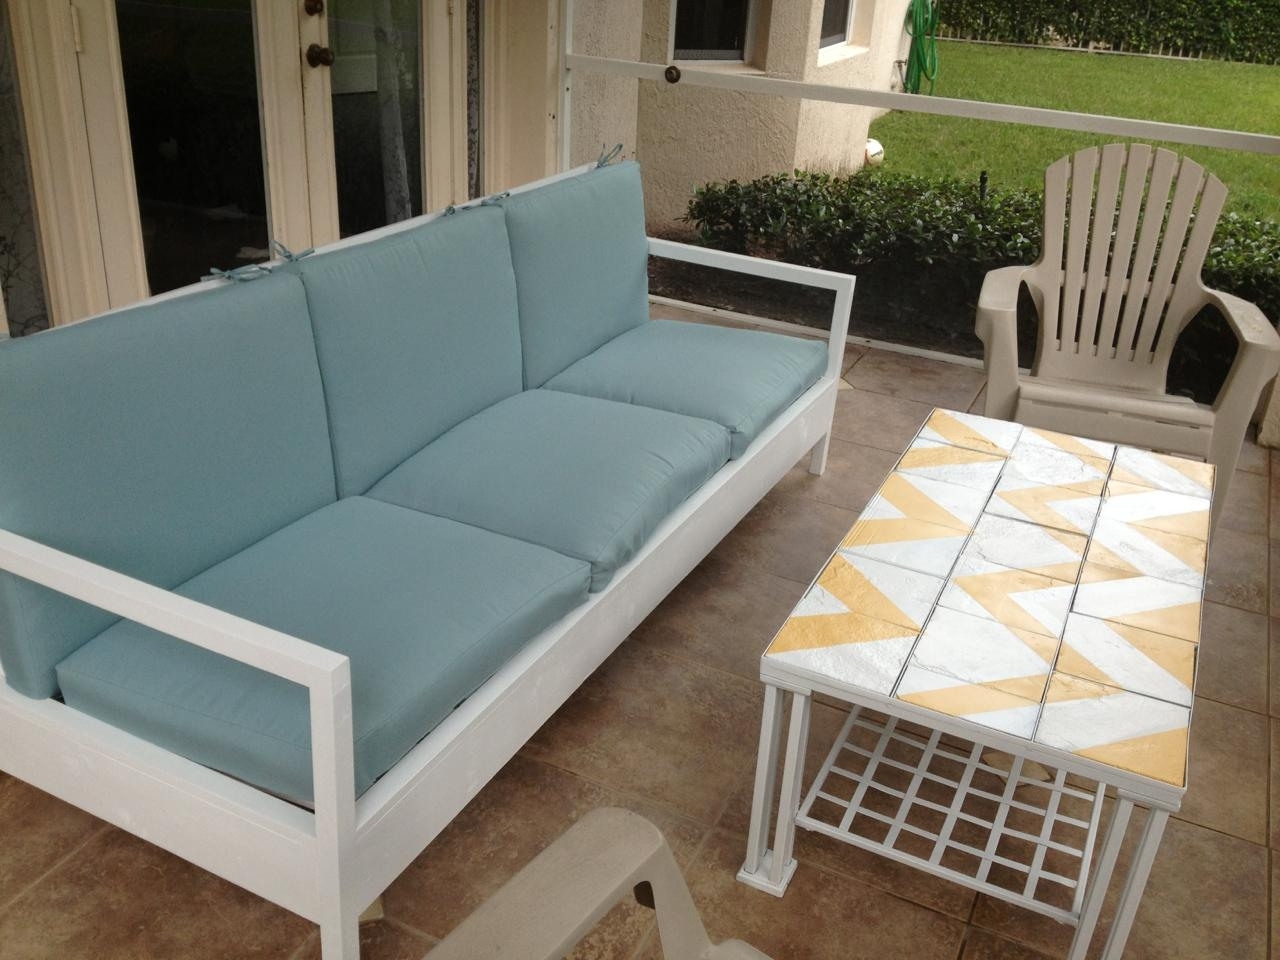 Ana White | Simple White Patio Sofa – Diy Projects Throughout Ana White Outdoor Sofas (Image 16 of 20)